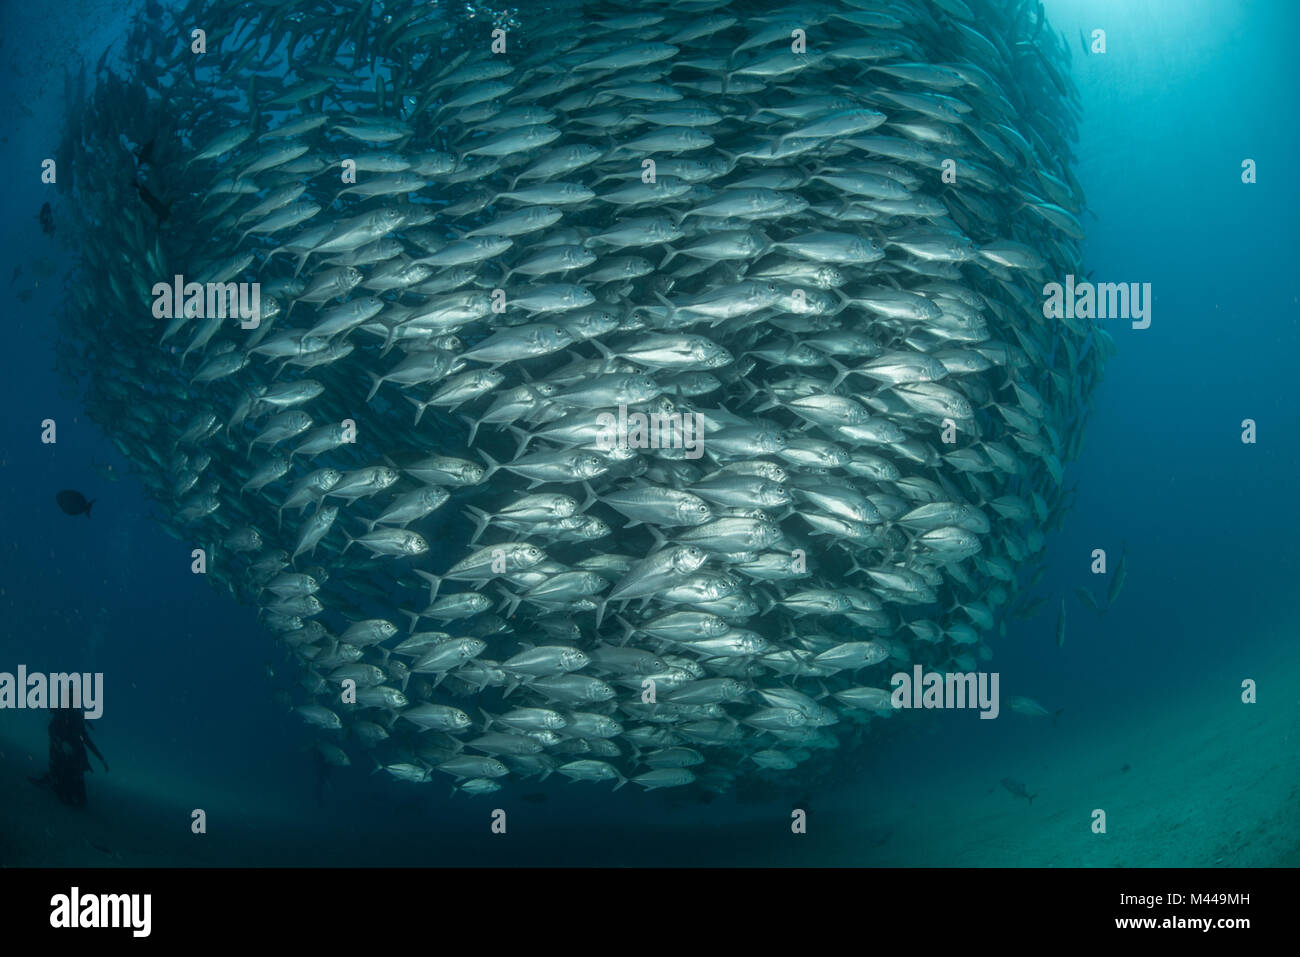 Diver swimming with school of jack fish, underwater view, Cabo San Lucas, Baja California Sur, Mexico, North America - Stock Image